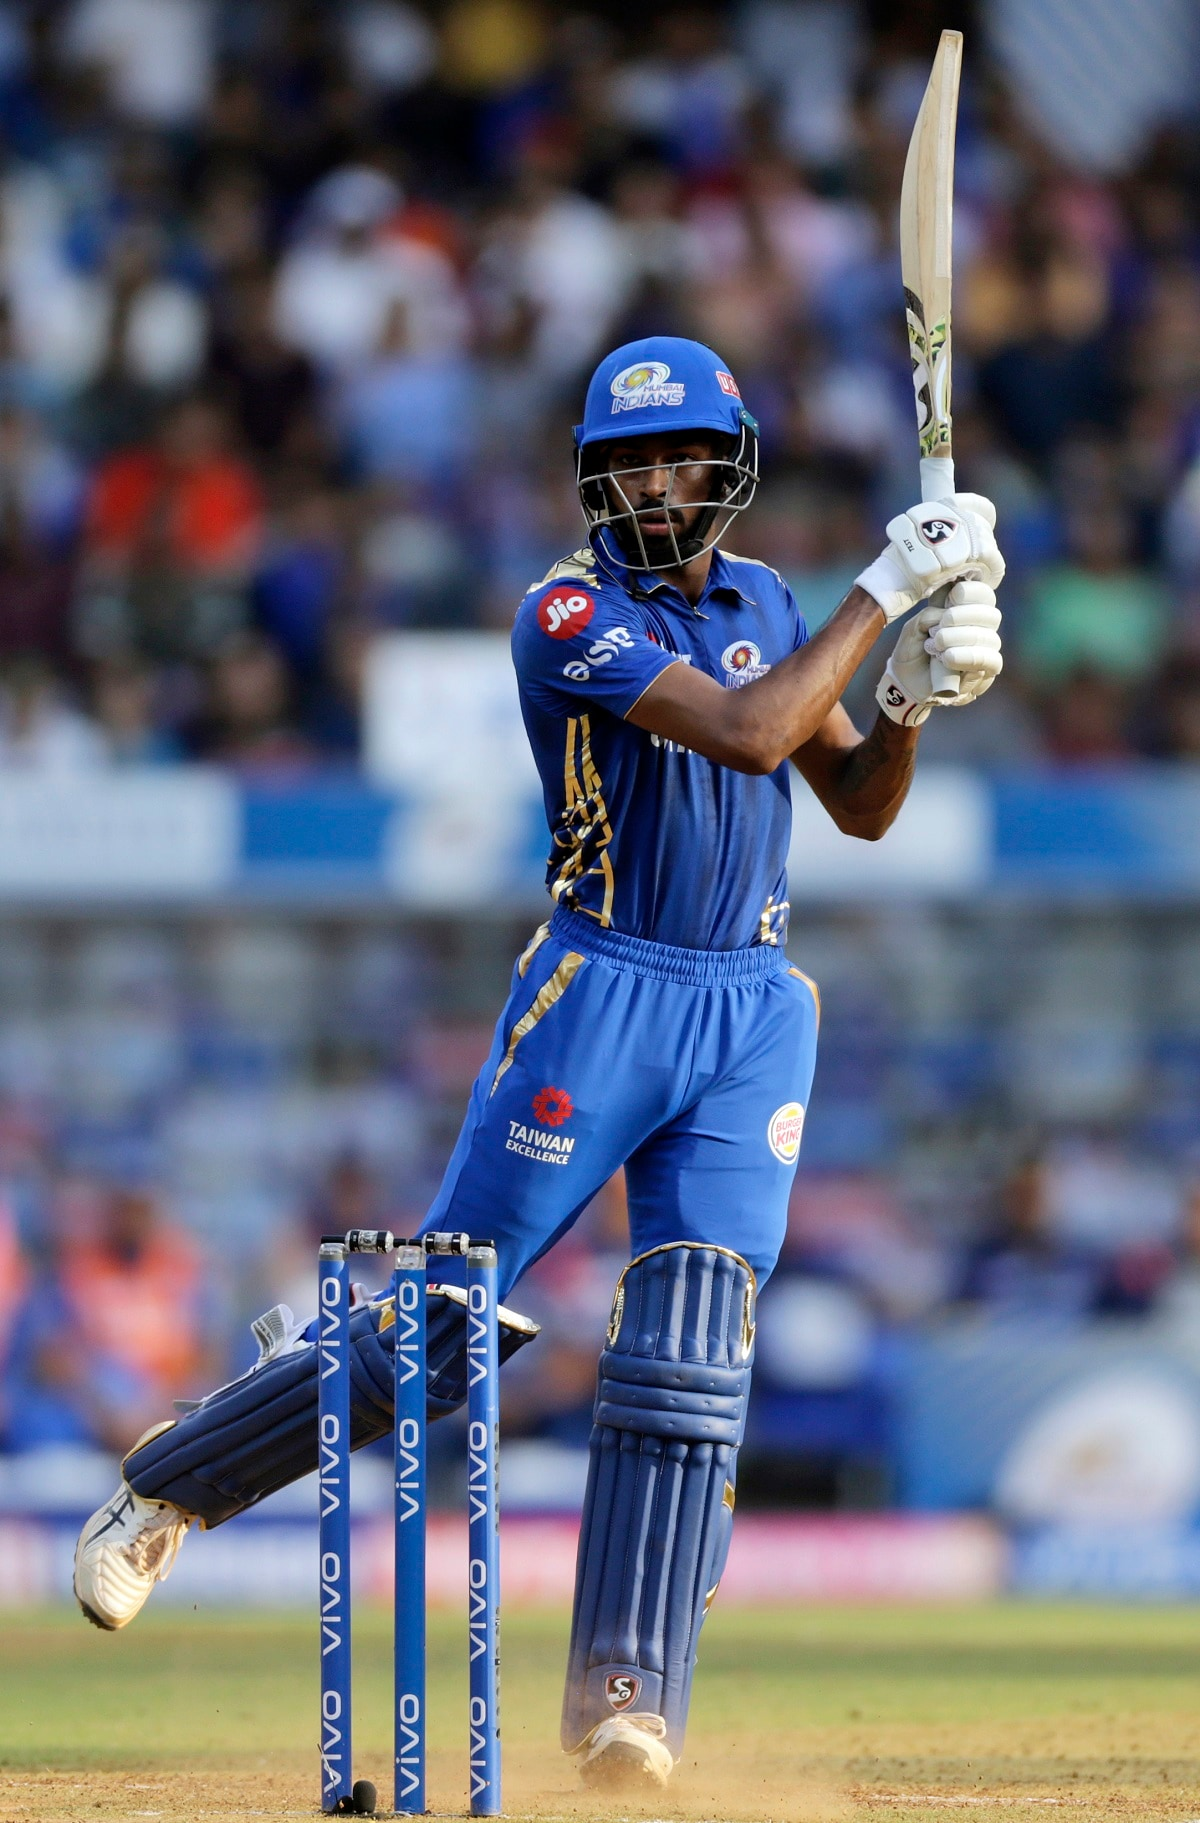 Mumbai Indians' Hardik Pandya bats during the VIVO IPL T20 cricket match between Mumbai Indians and Rajasthan Royals. (AP Photo/Rajanish Kakade)